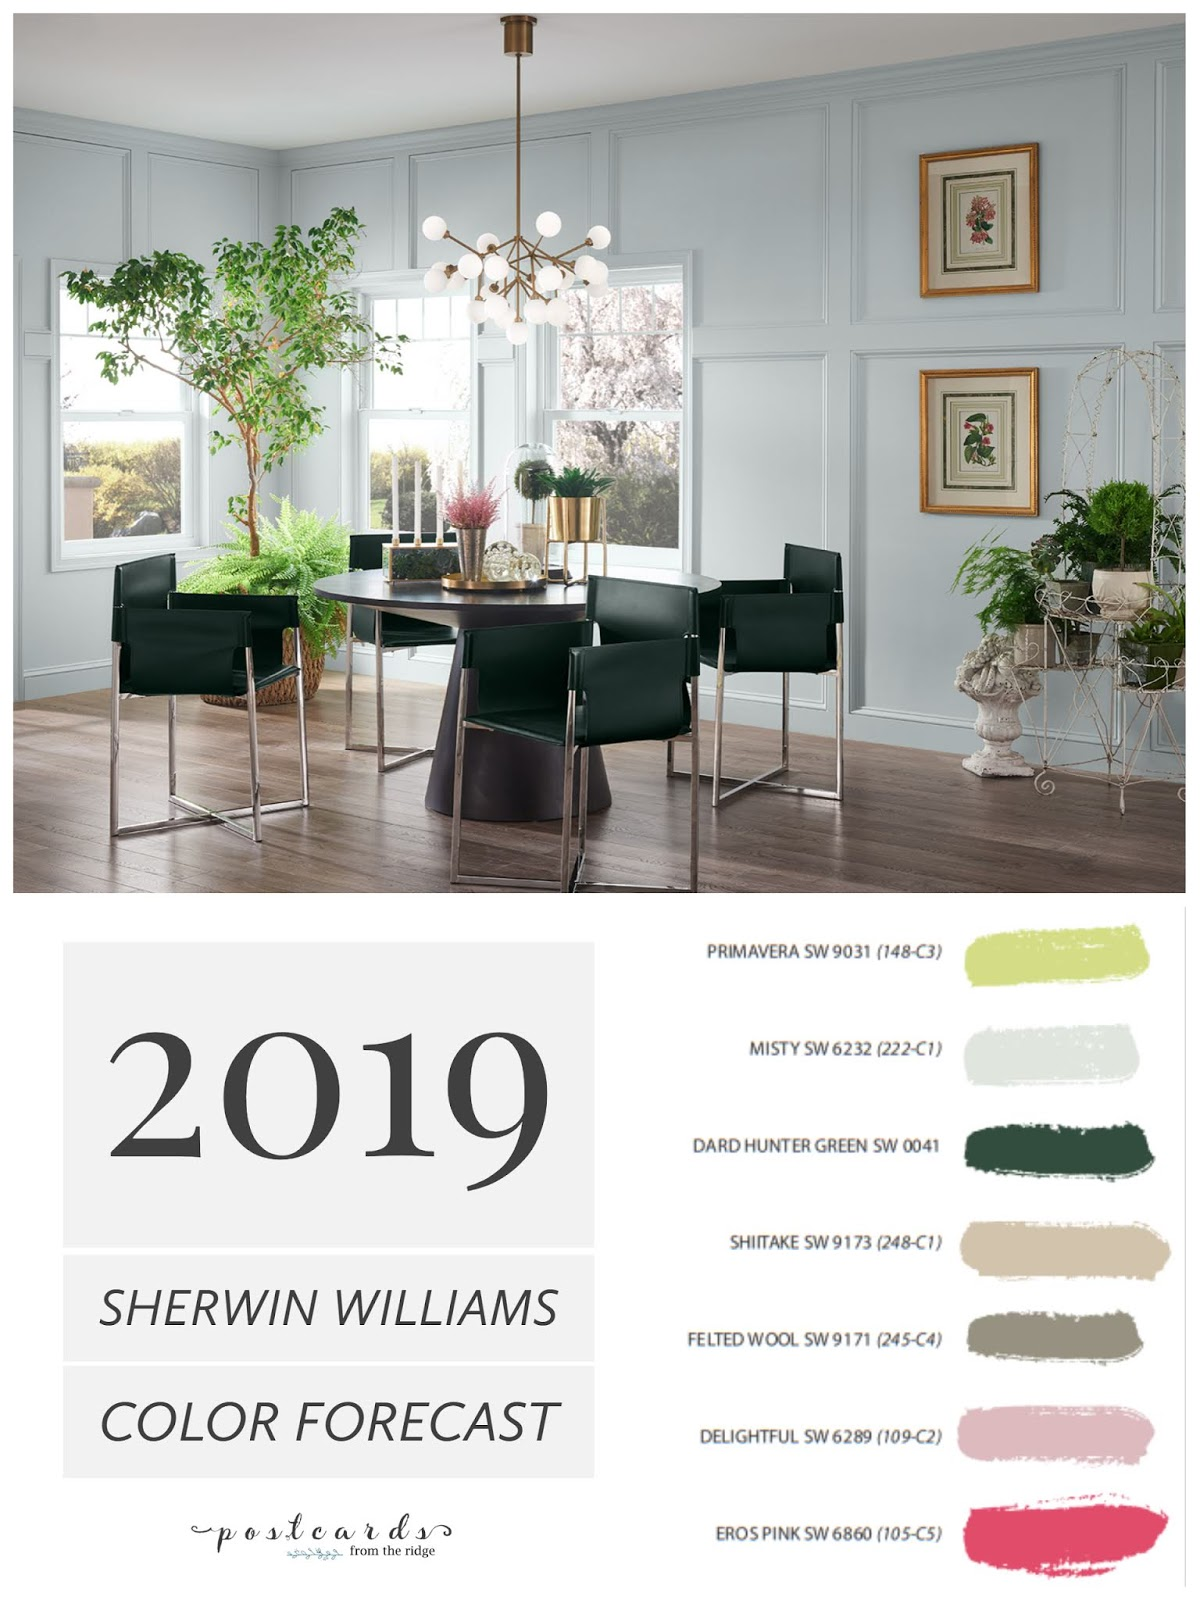 living room paint colors 2019 curtains idea color forecast from sherwin williams postcards the light blue gray dining